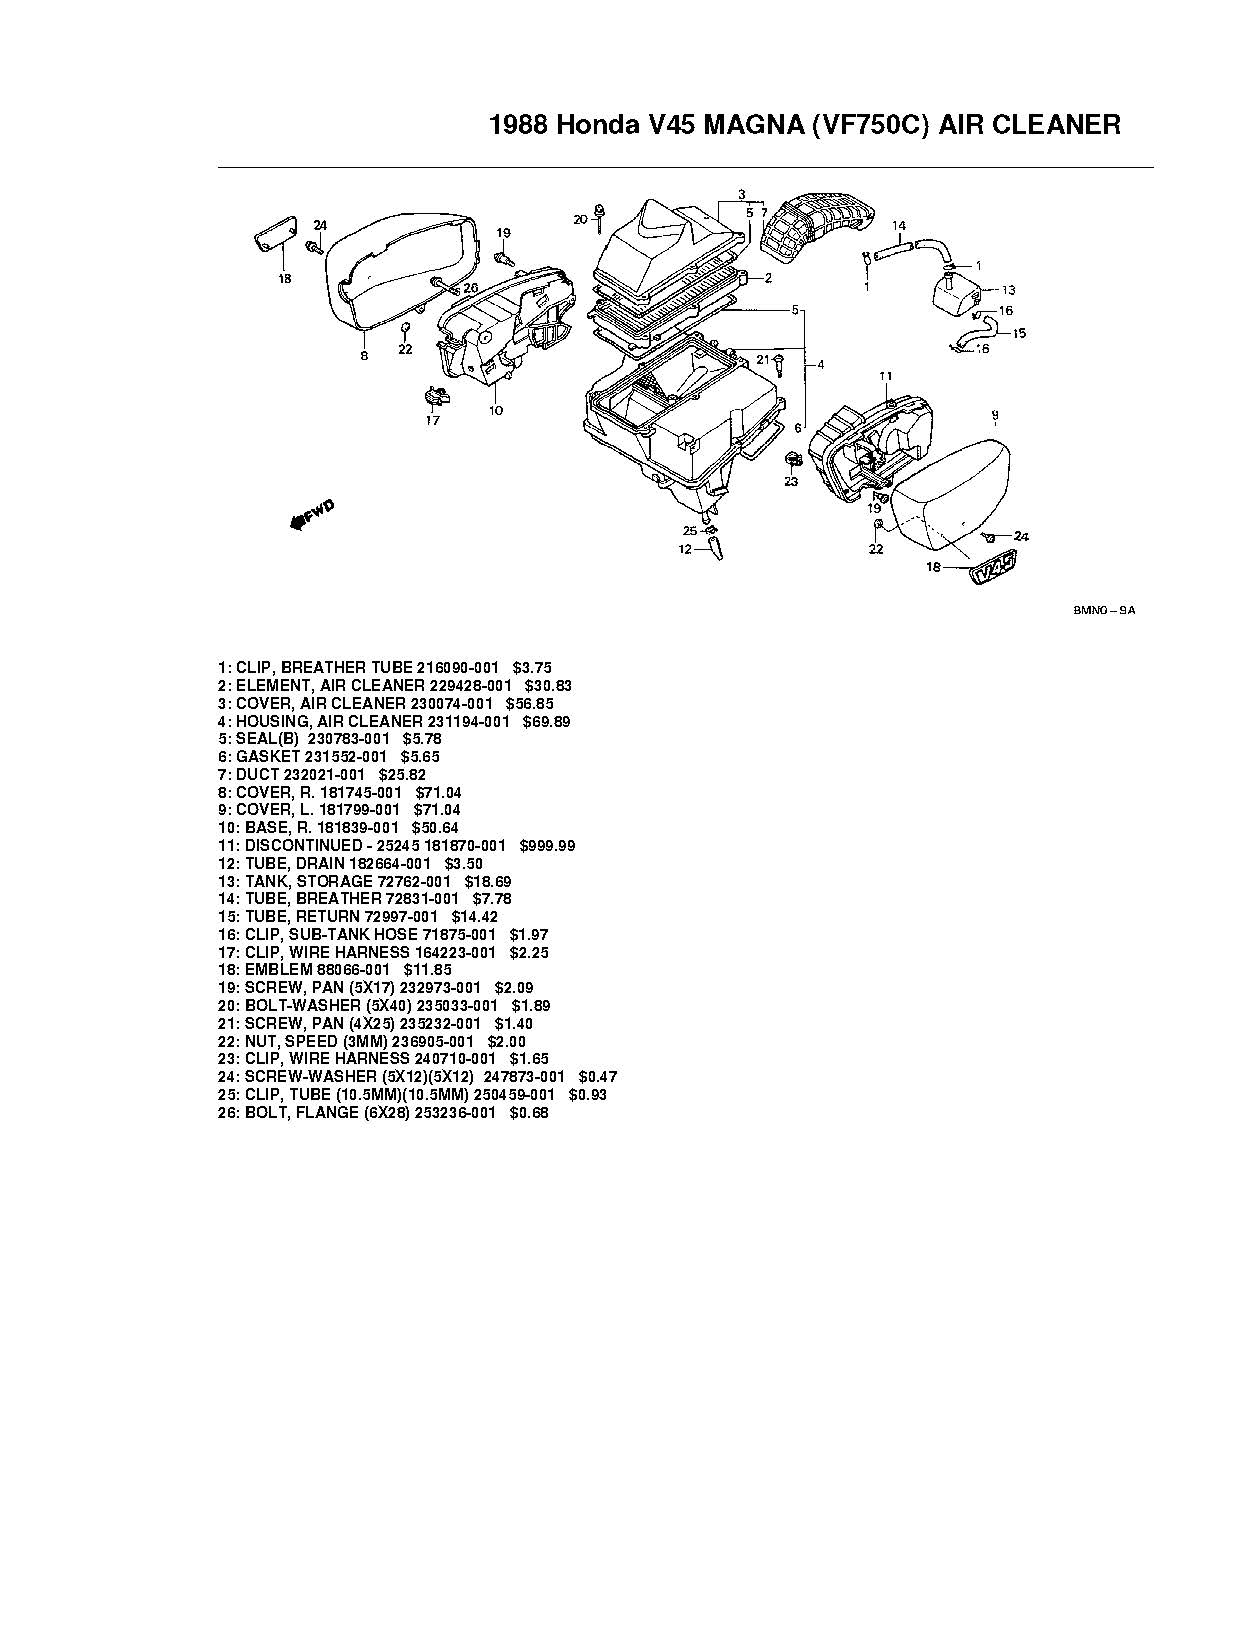 Parts list for Honda VF750C (1988)